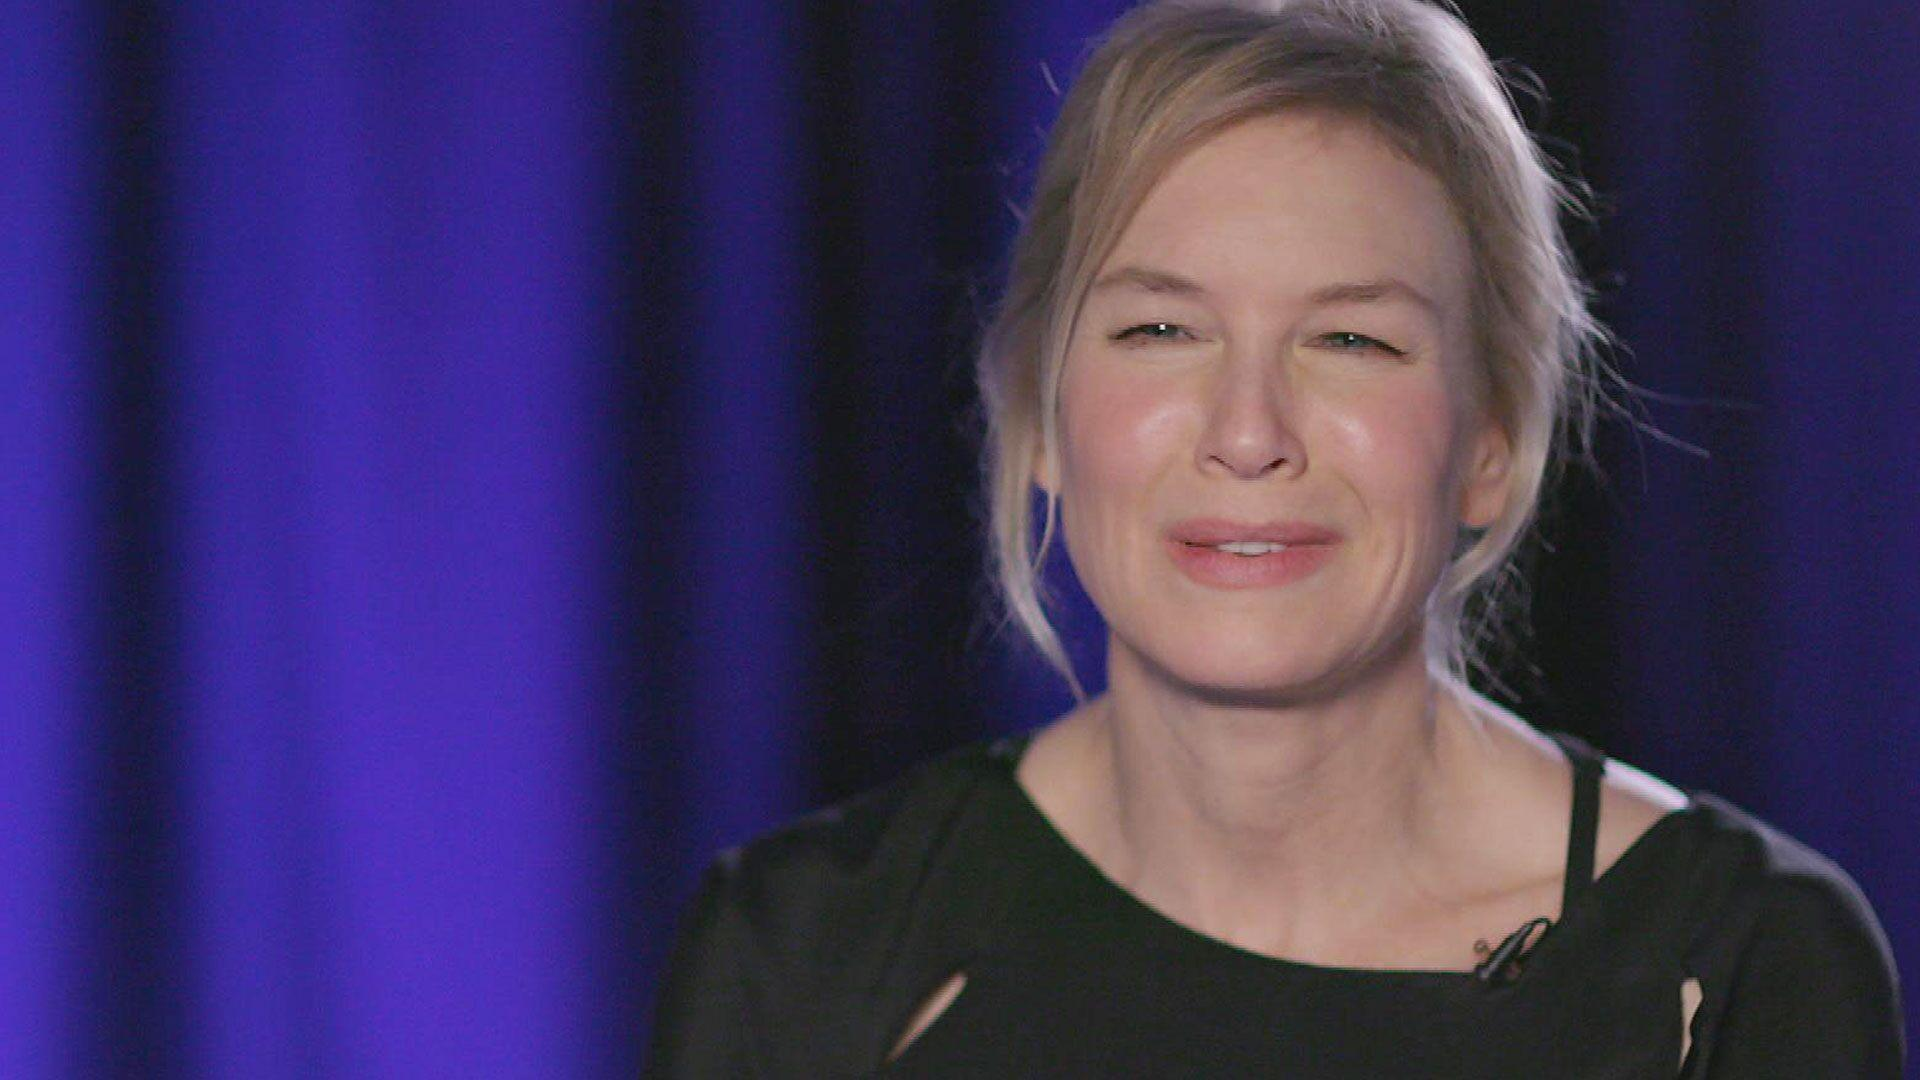 Renee Zellweger on the 'Life Blessing' of Transforming Into